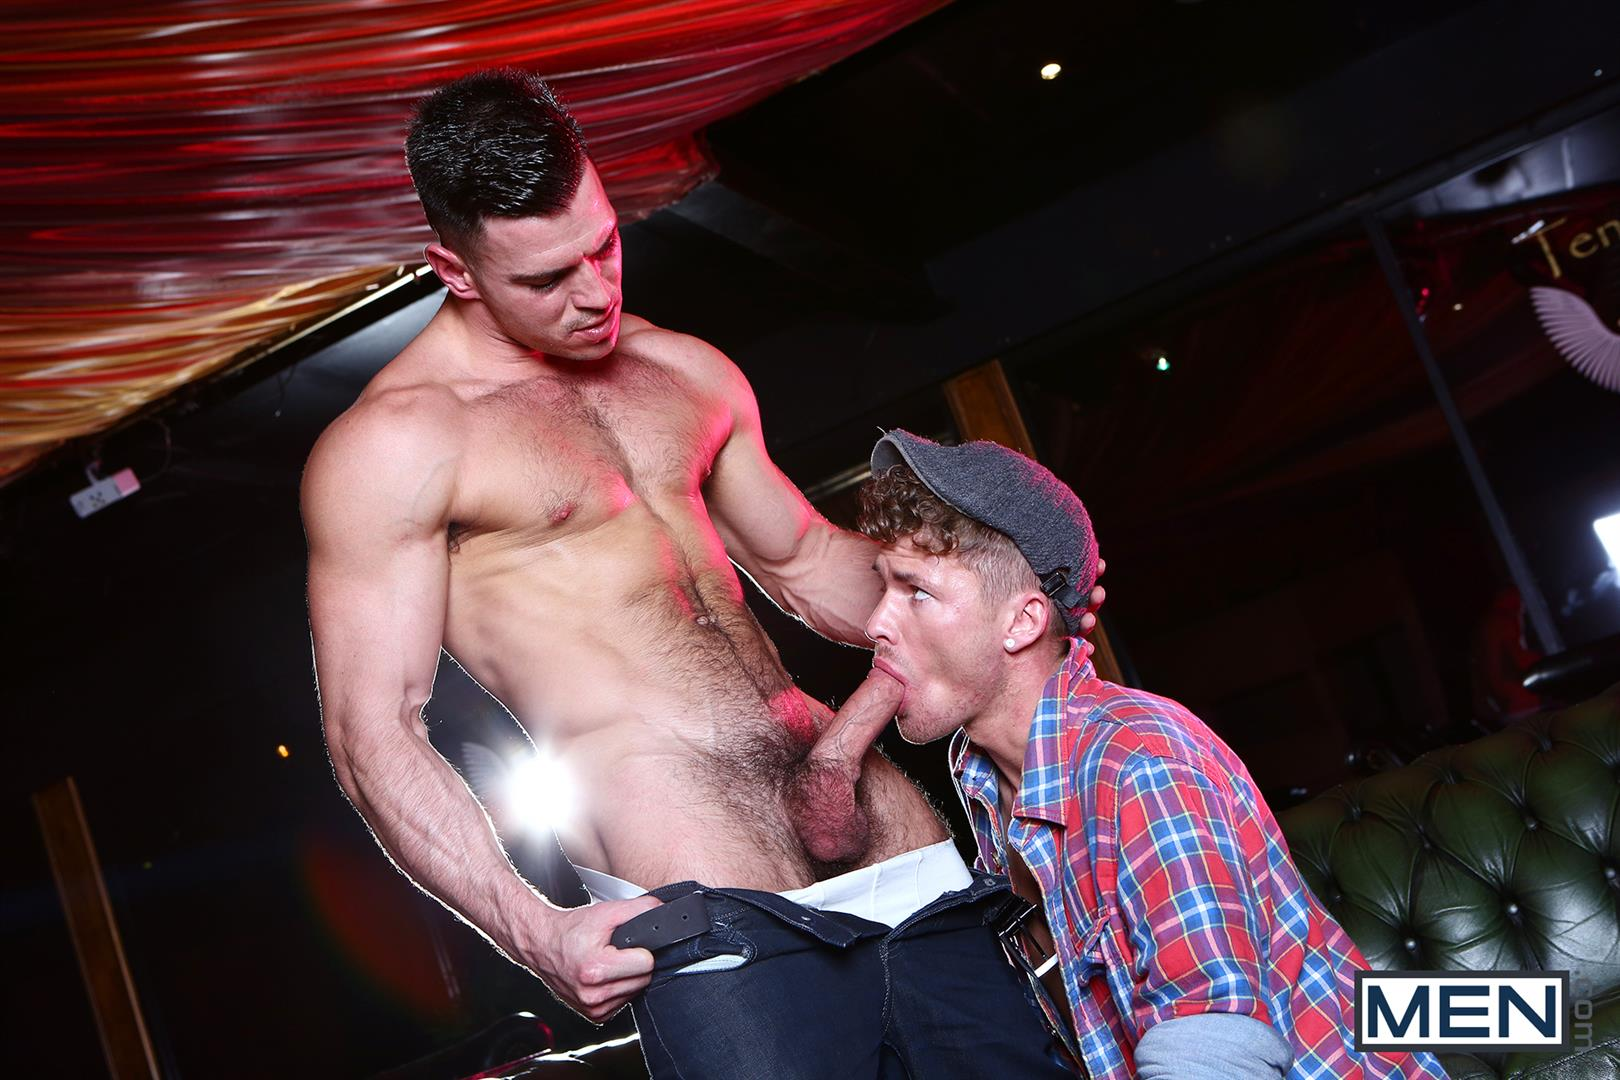 Men-Paddy-OBrian-and-McKenise-Cross-Muscle-Hunks-With-Horse-Cocks-Fucking-Amateur-Gay-Porn-12 Paddy O'Brian Fucking McKensie Cross With His Big Thick Cock